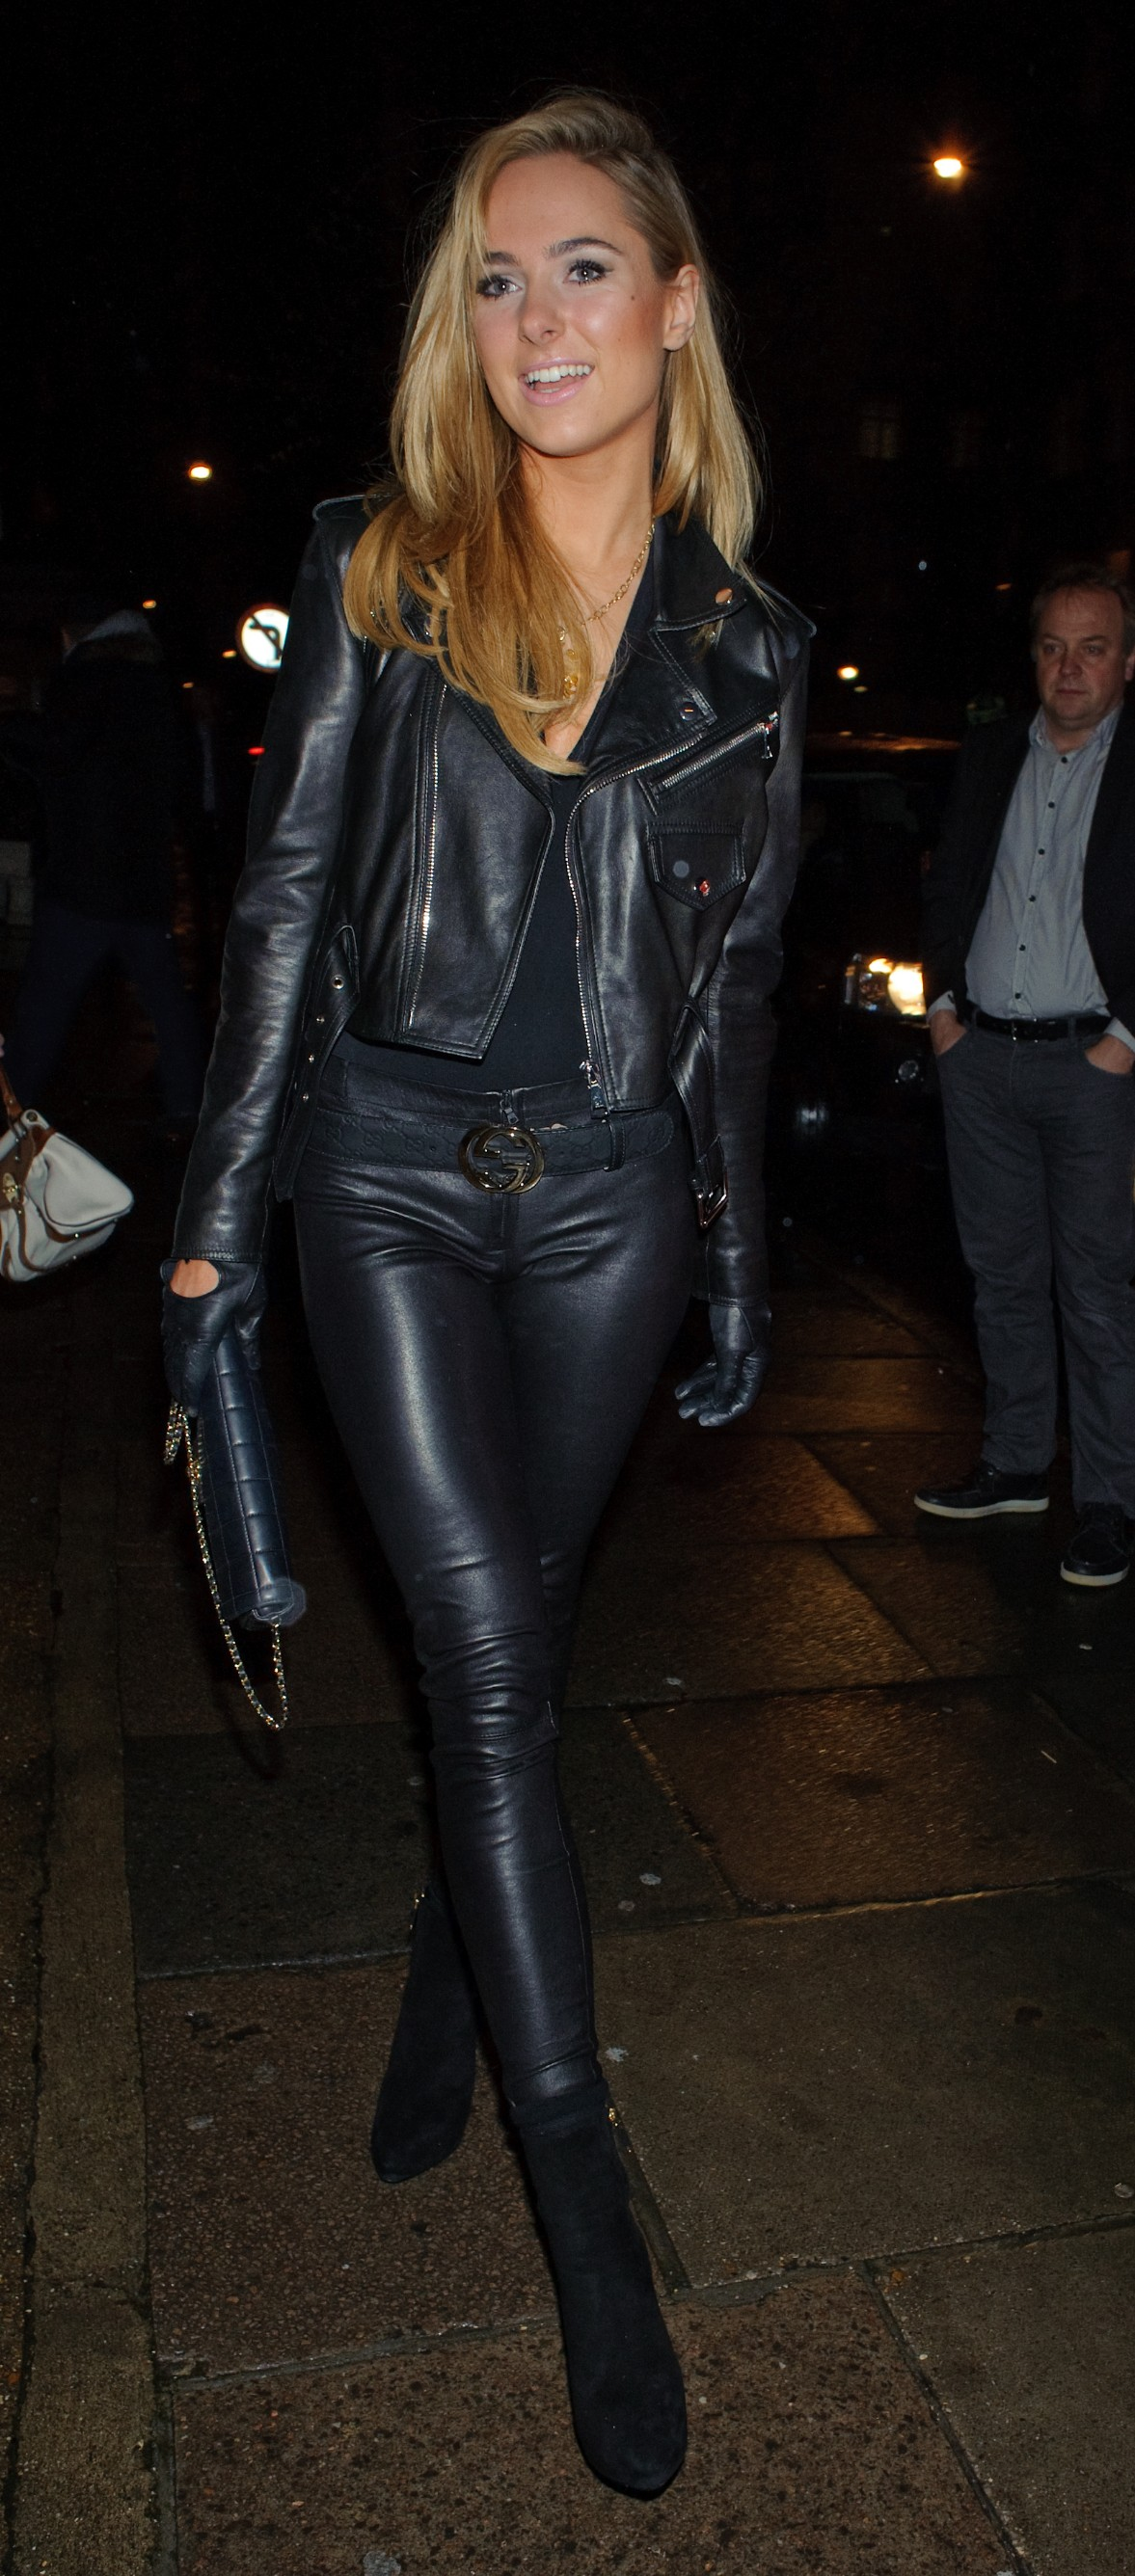 Ladies in leather gloves and boots - Kimberley Garner Leather Uhq